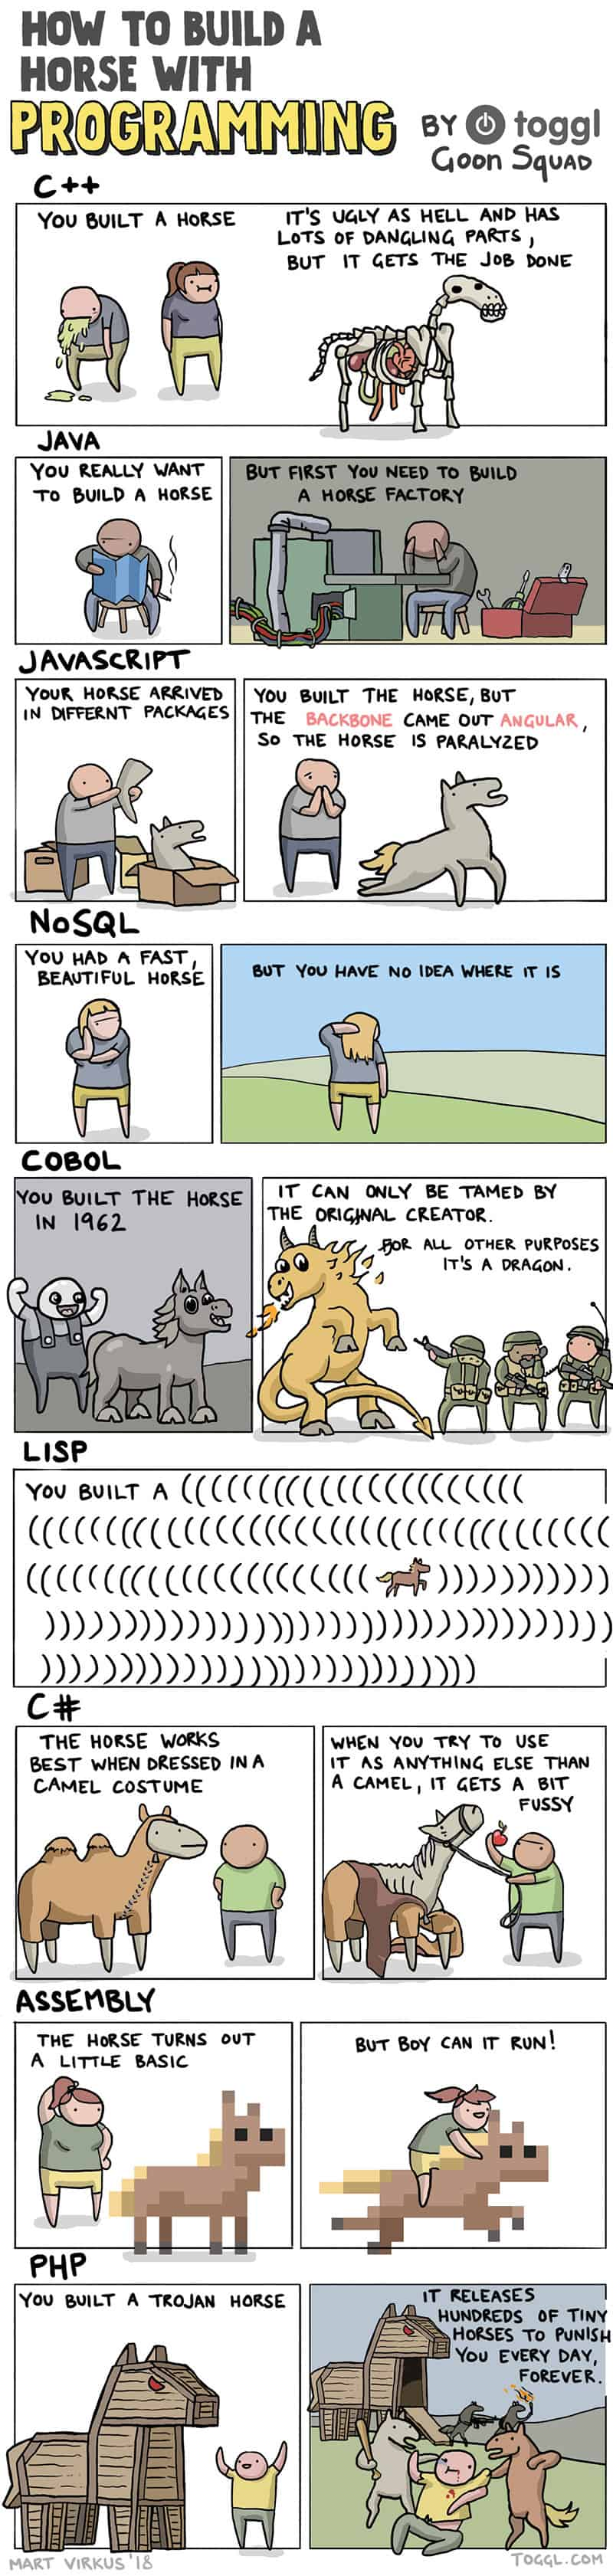 How to Build A Horse with Programming comic